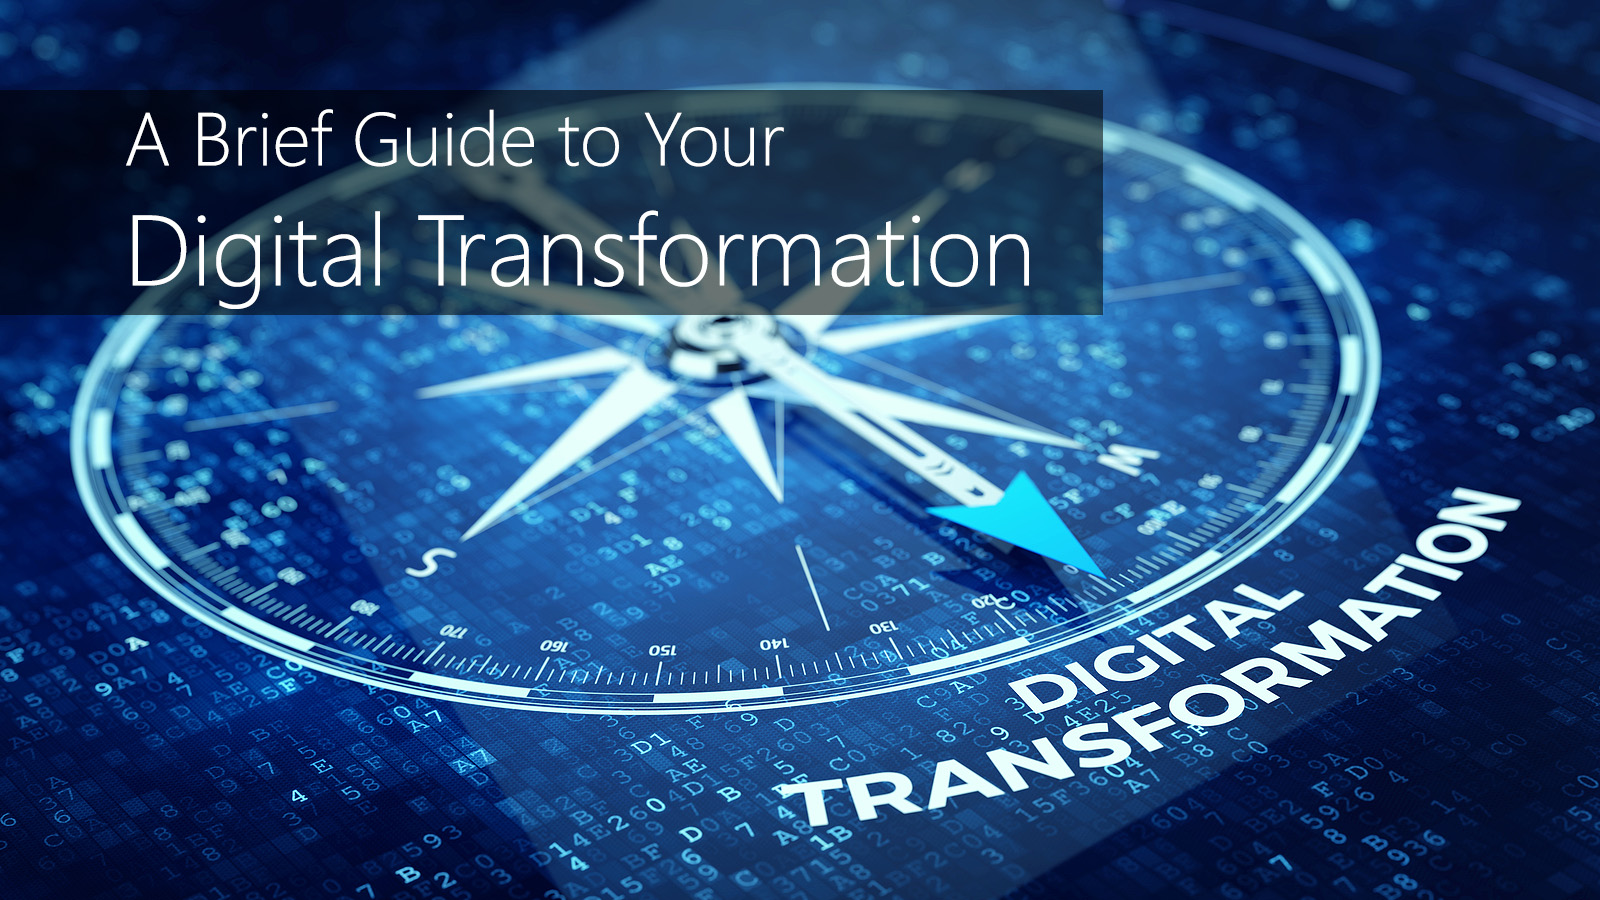 A Brief Guide to Your Digital Transformation